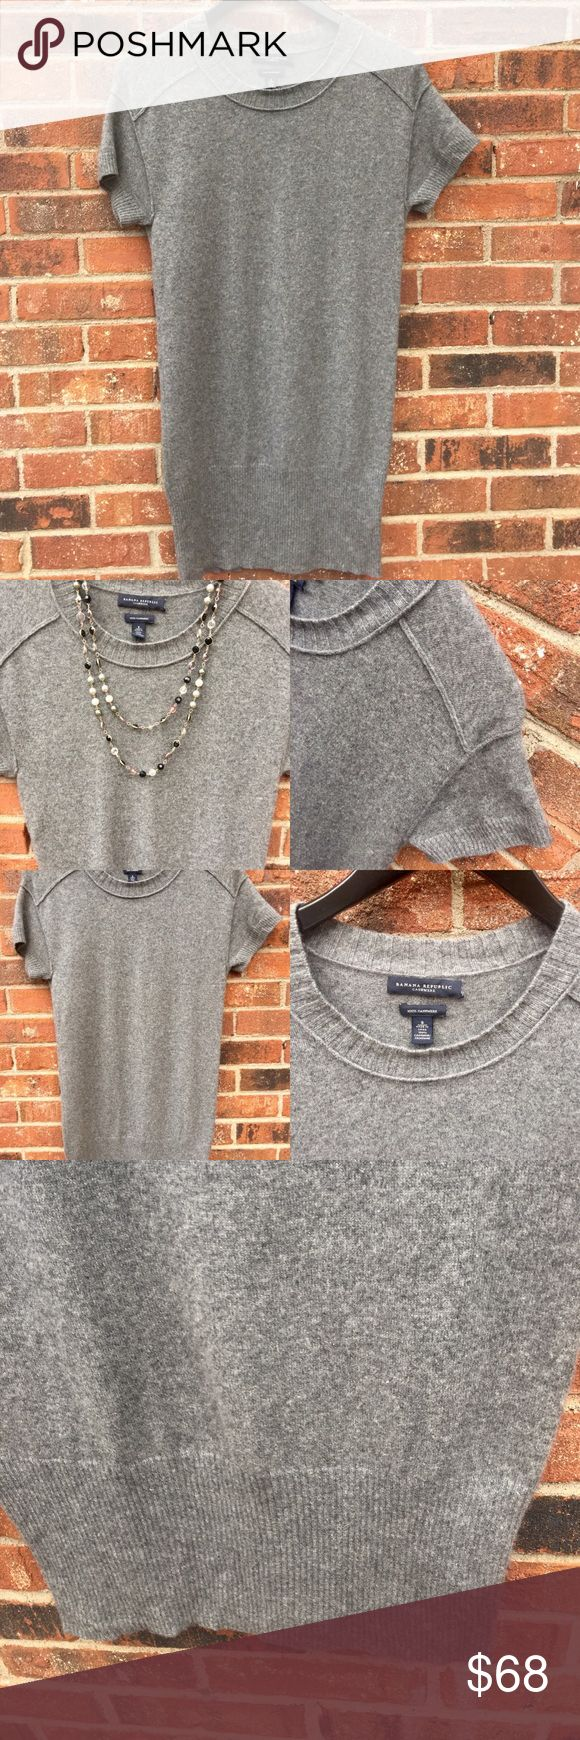 Banana Republic 100% Cashmere Sweater~ Size Small Excellent pre worn condition! Pair with leggings, scarf & boots or tights, heels & jewelry. Perfect any way you choose! 100% Cashmere round neck sweater/dress no noticeable stains or flaws! Banana Republic Dresses Midi